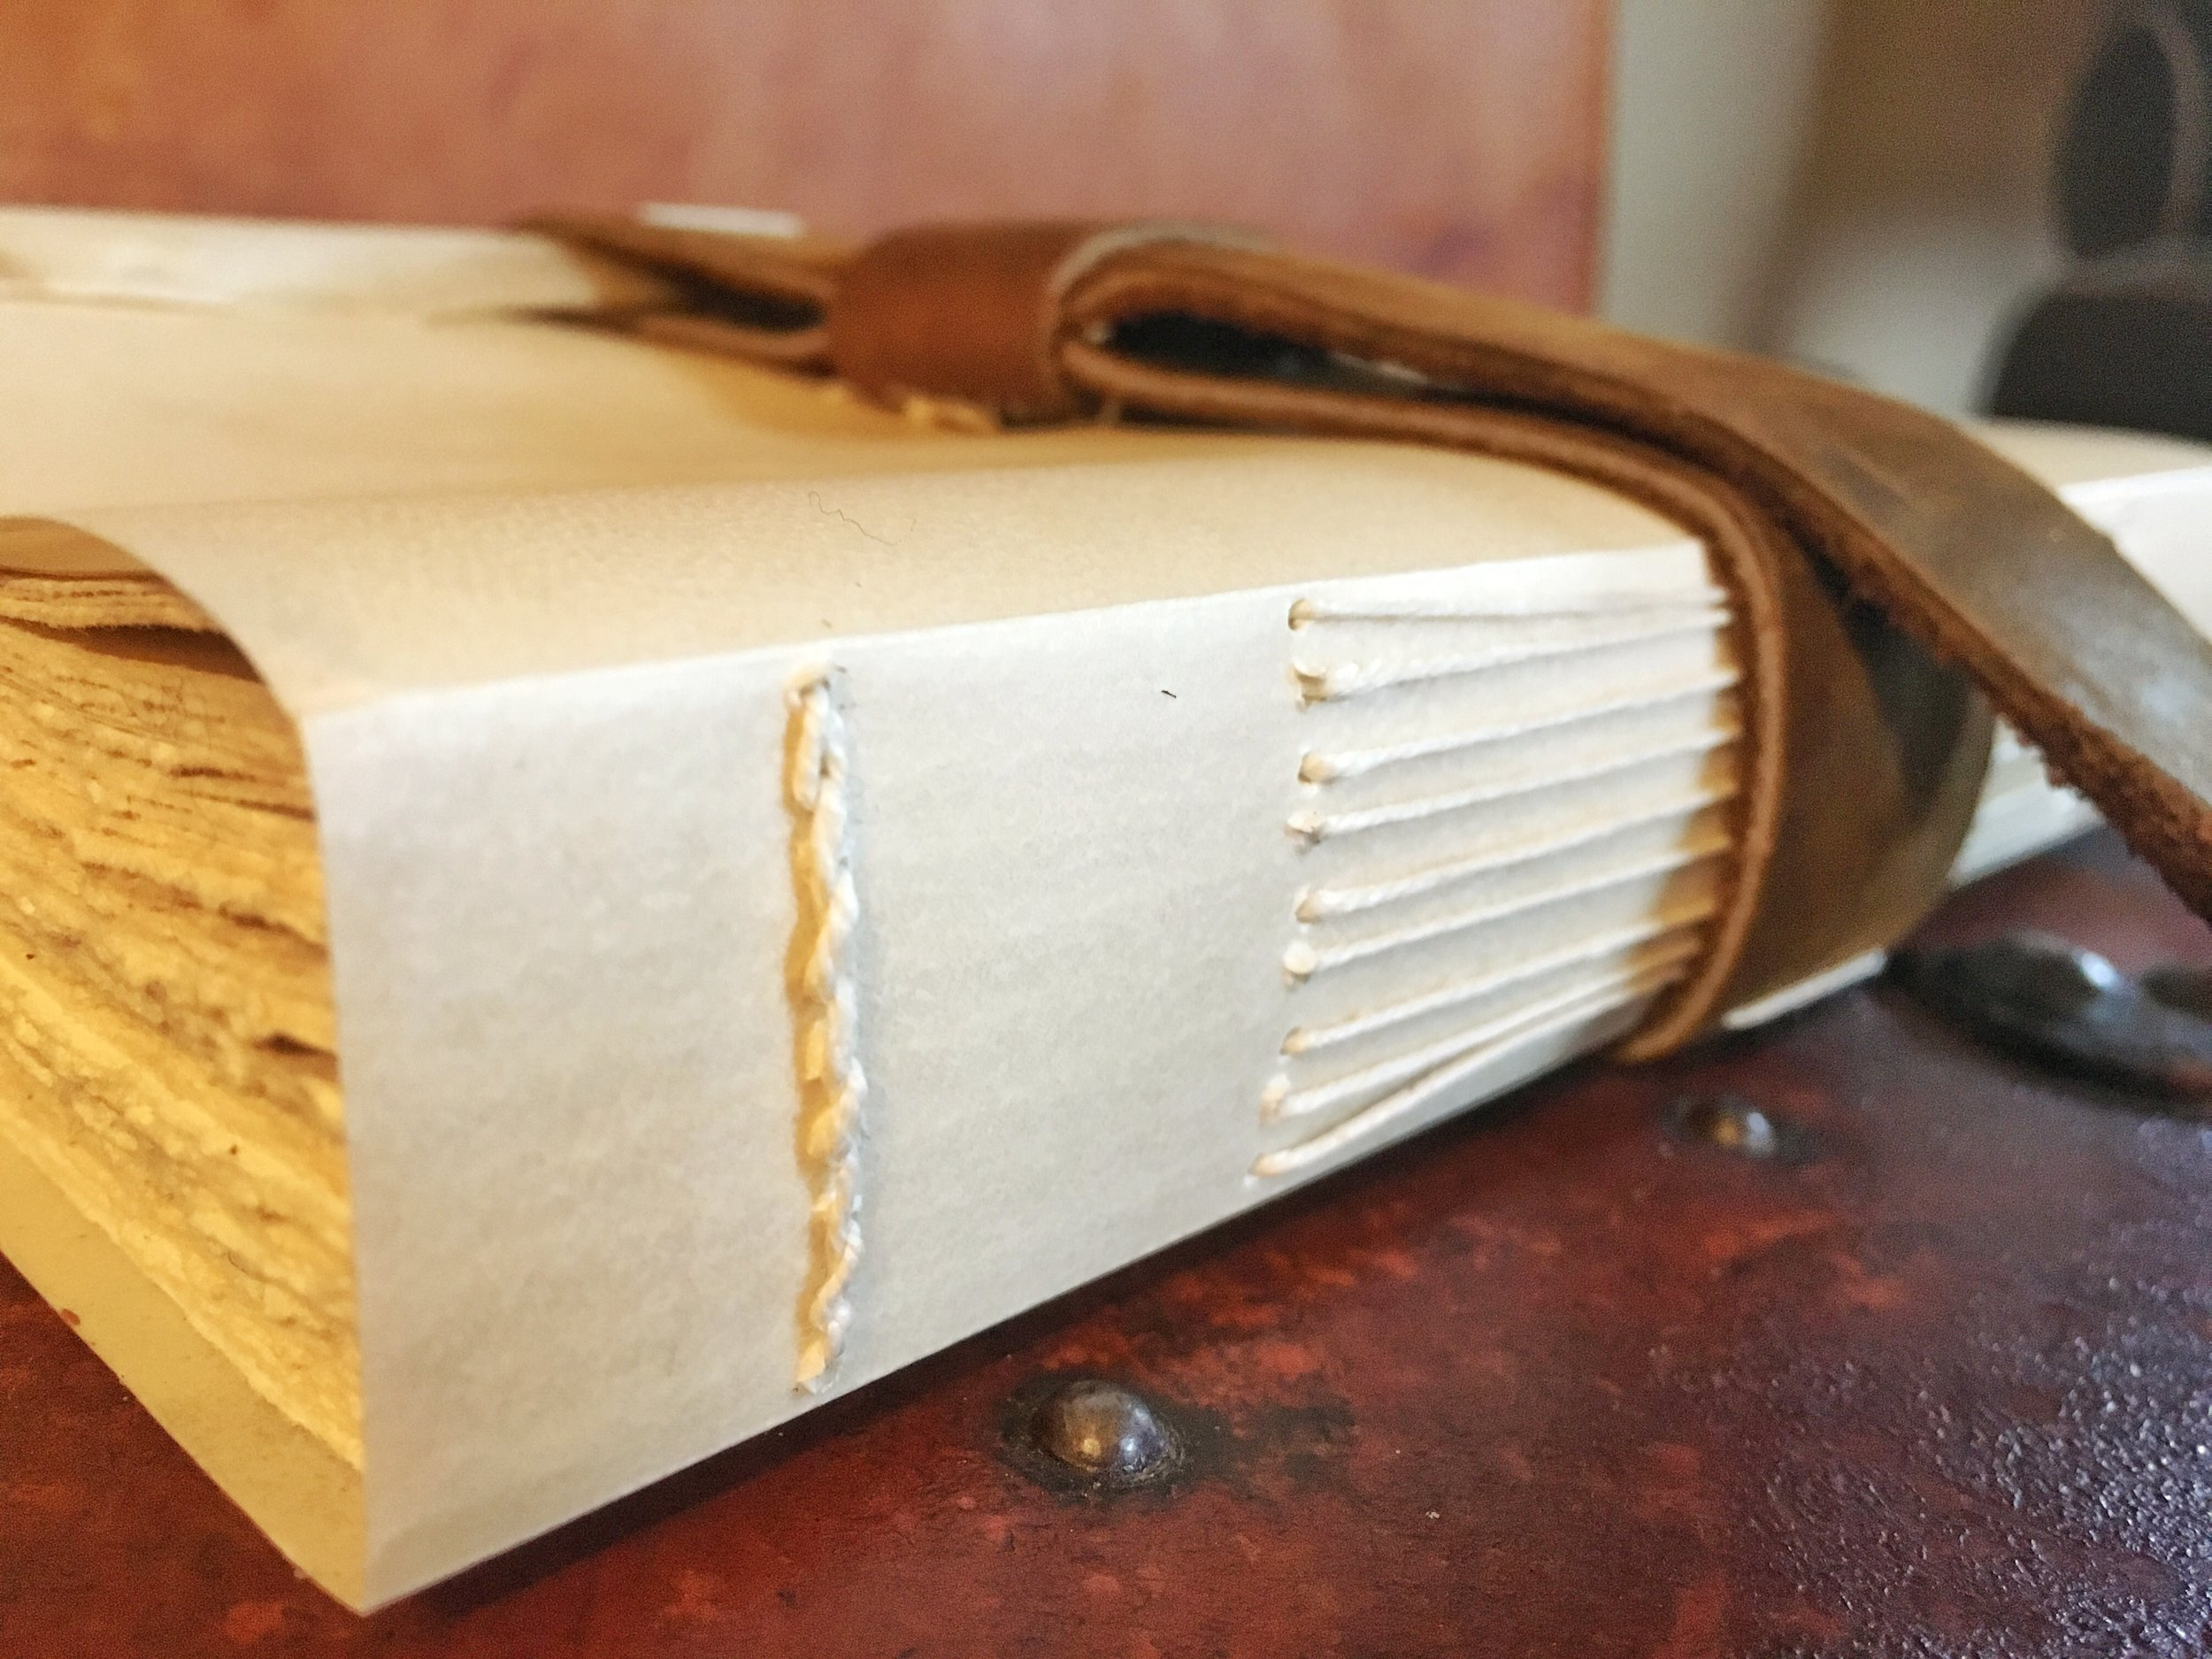 Simple long-stitch sewing on a closed spine of vellum.